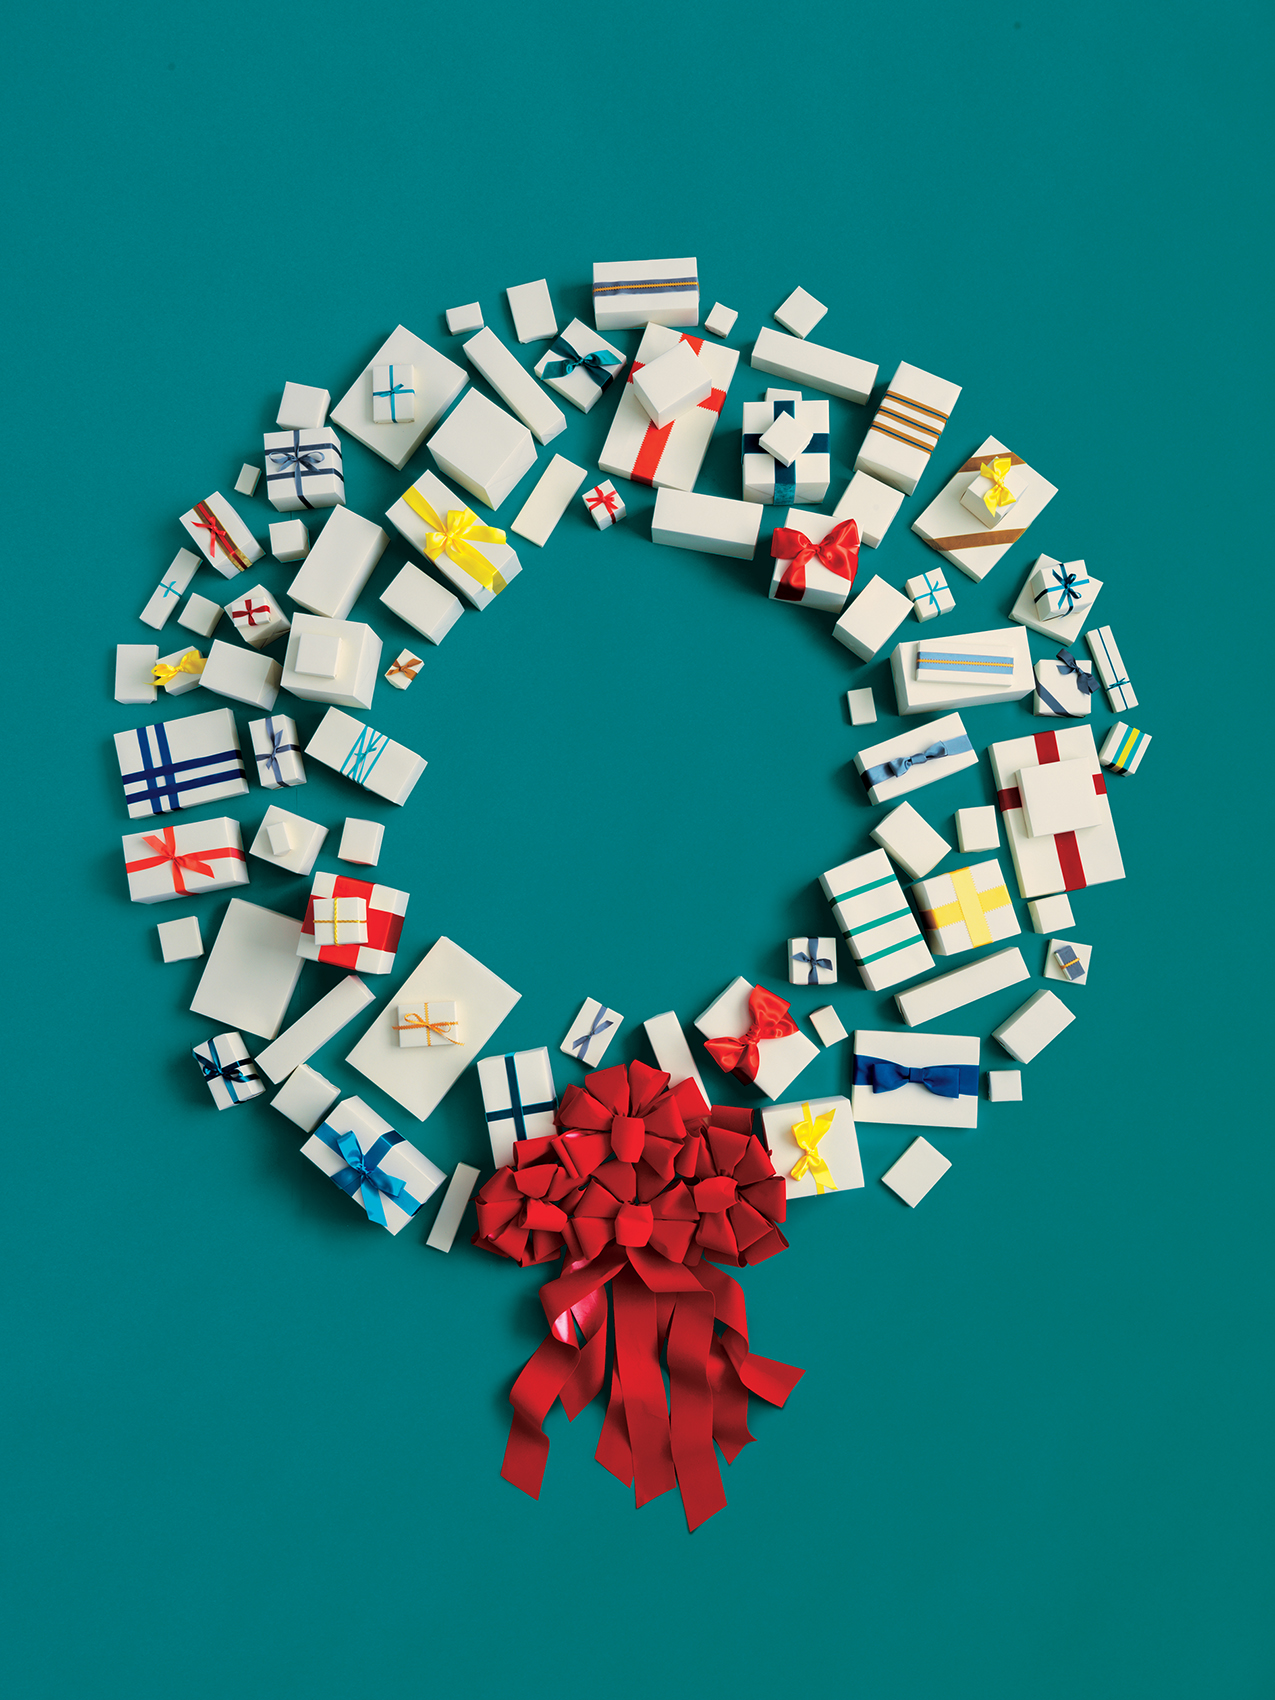 Still Life of Assorted Presents Forming a Wreath